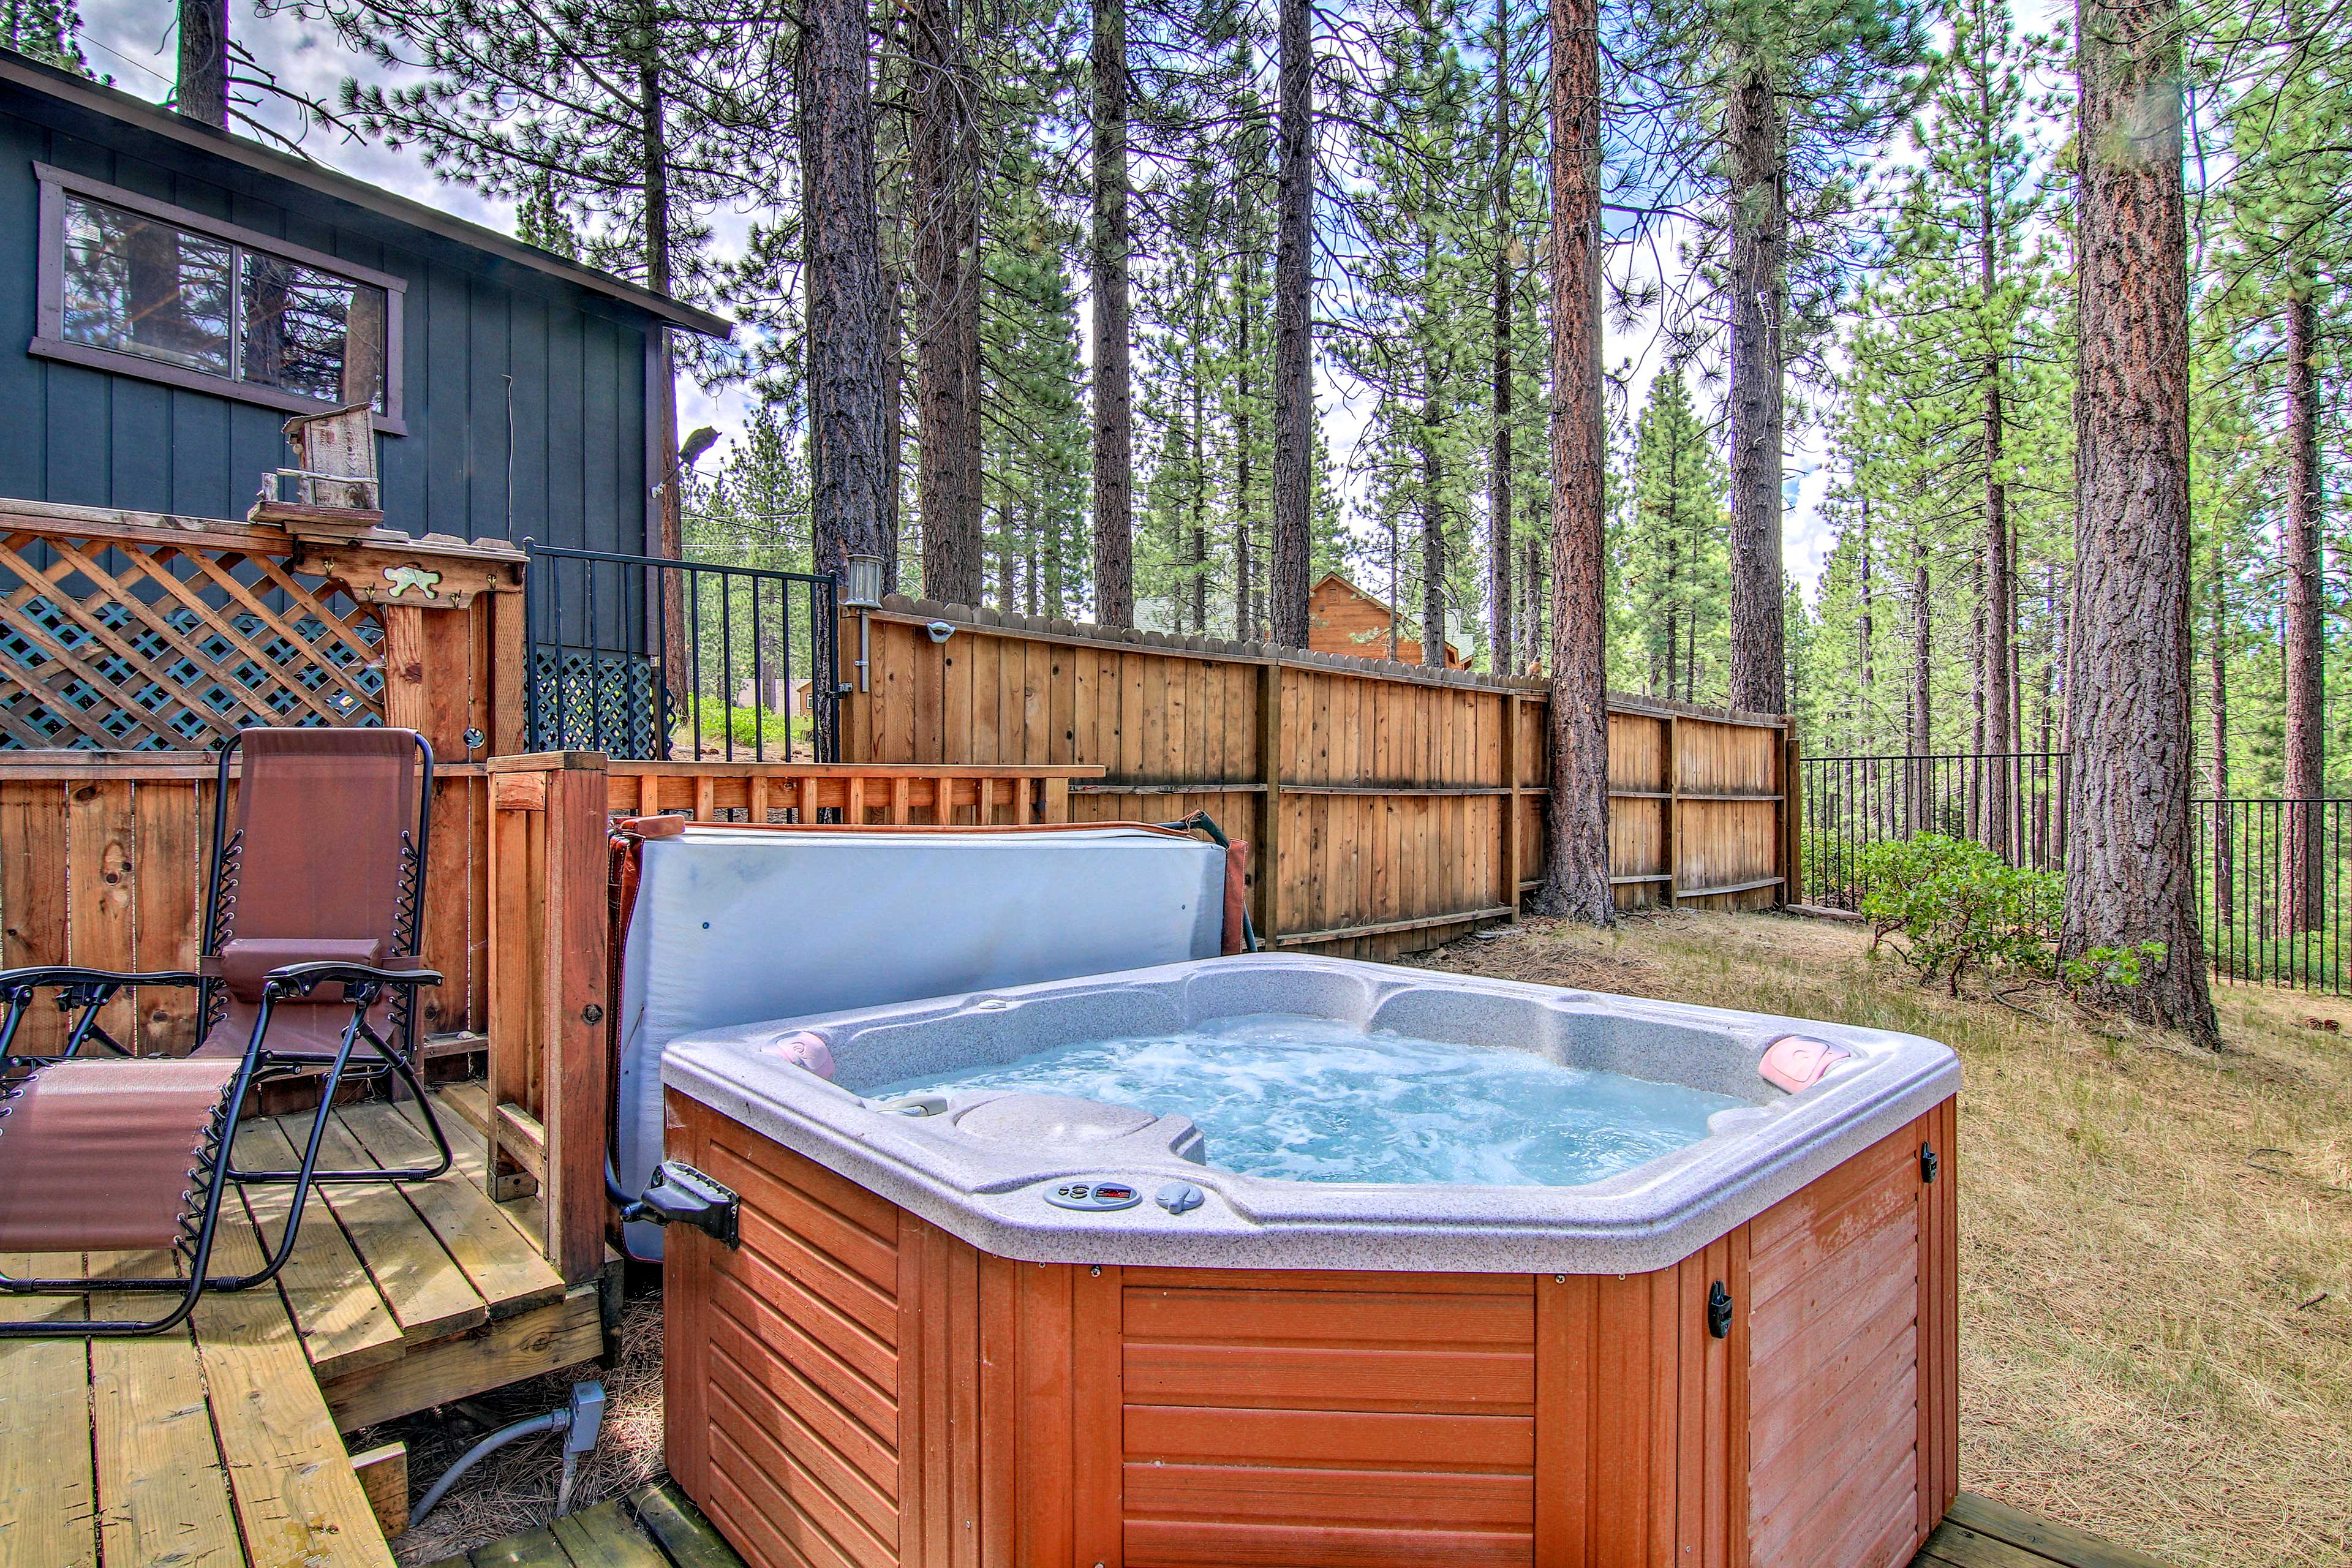 Relax in the hot tub after a day hitting the slopes.